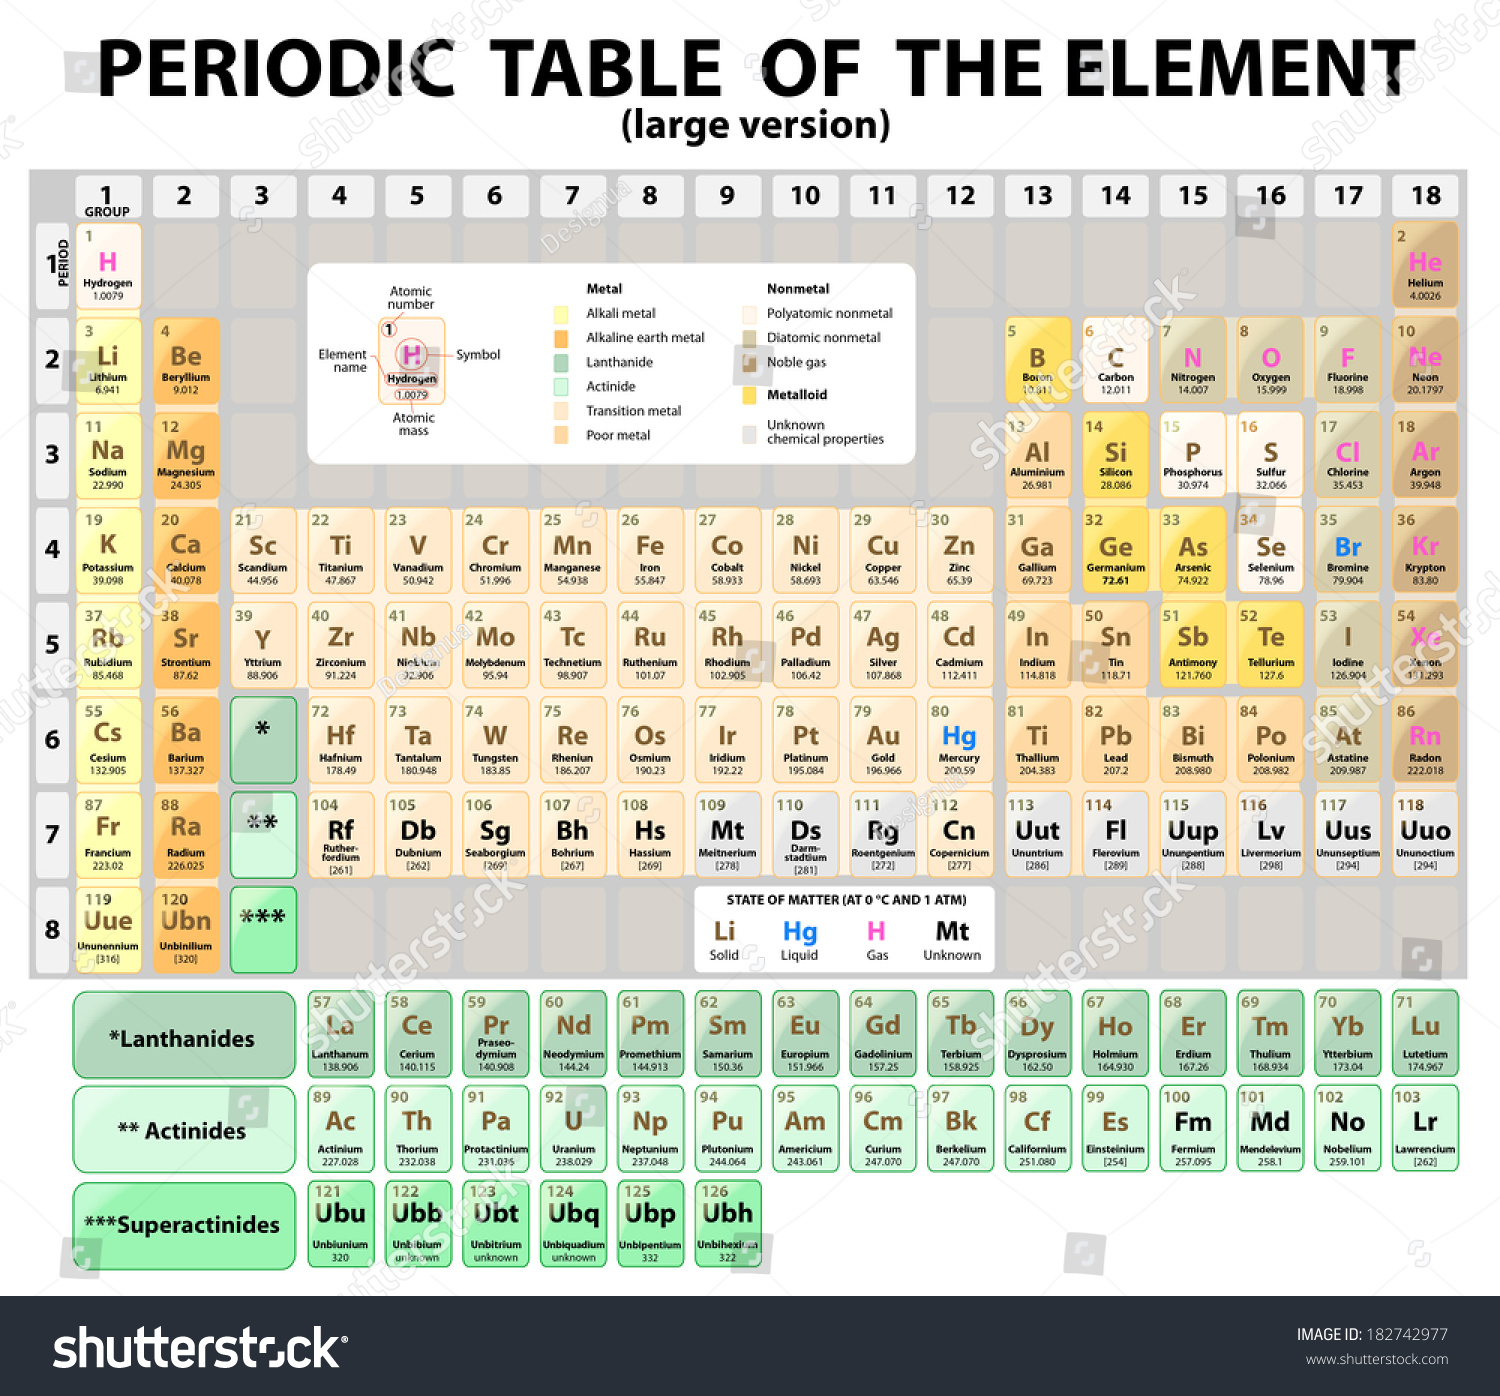 Periodic table wikipedia large water sanitation solutions diagram salt symbol periodic table images periodic table images stock photo periodic table of the elements with atomic number symbol and weight large version gamestrikefo Gallery